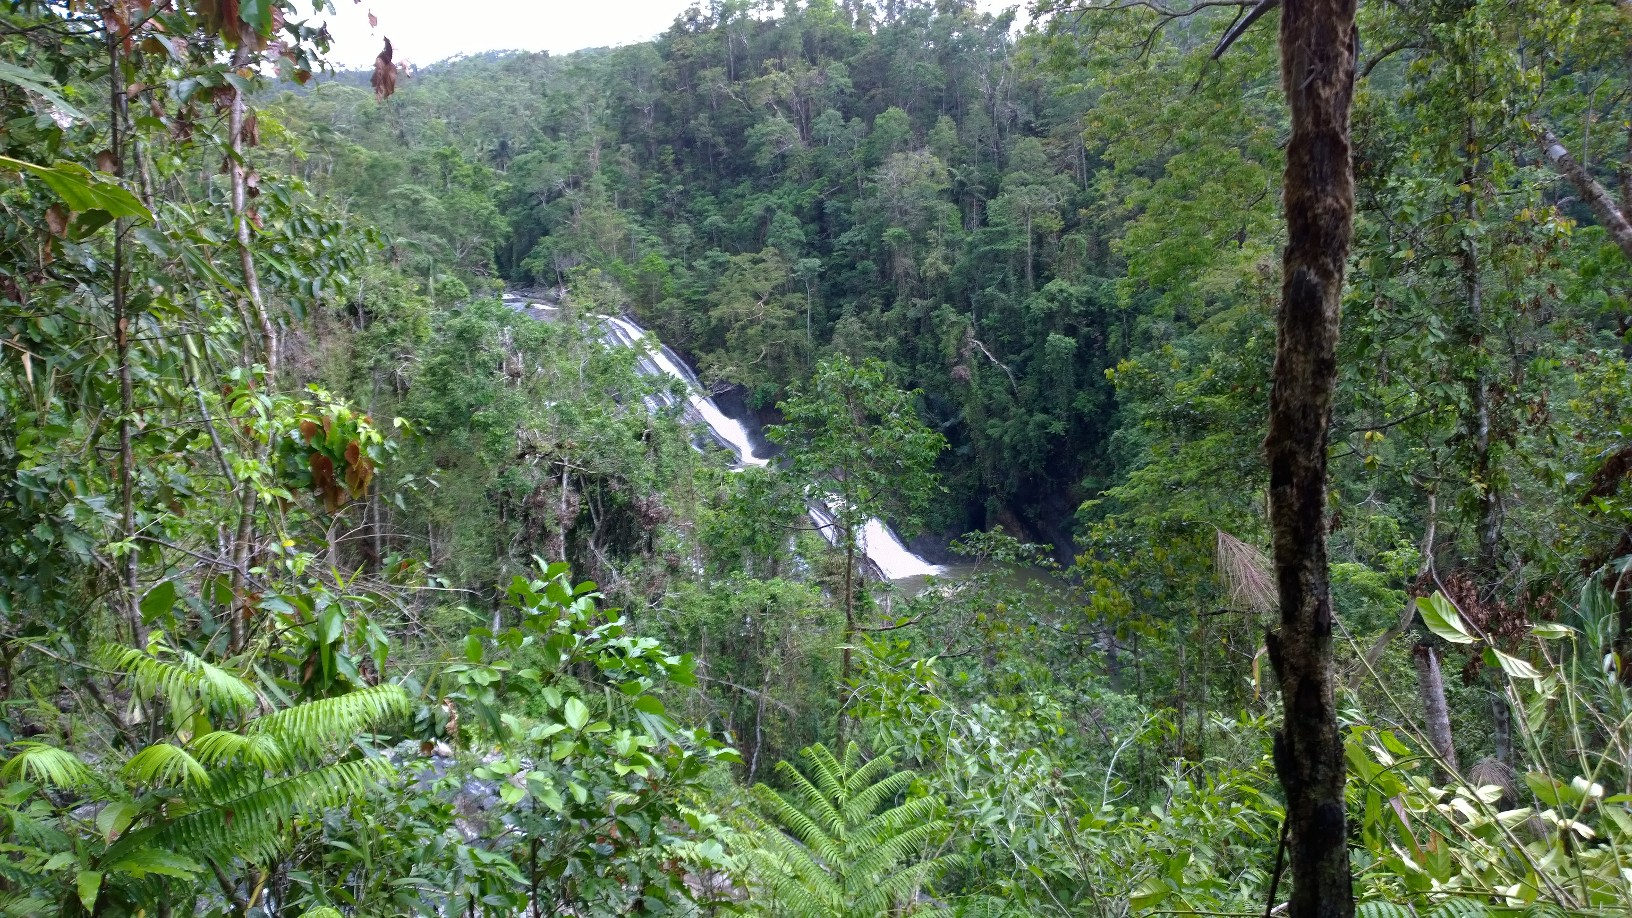 The biggest waterfall in the Sitio Maapon area. Photo by Alexander Elias.